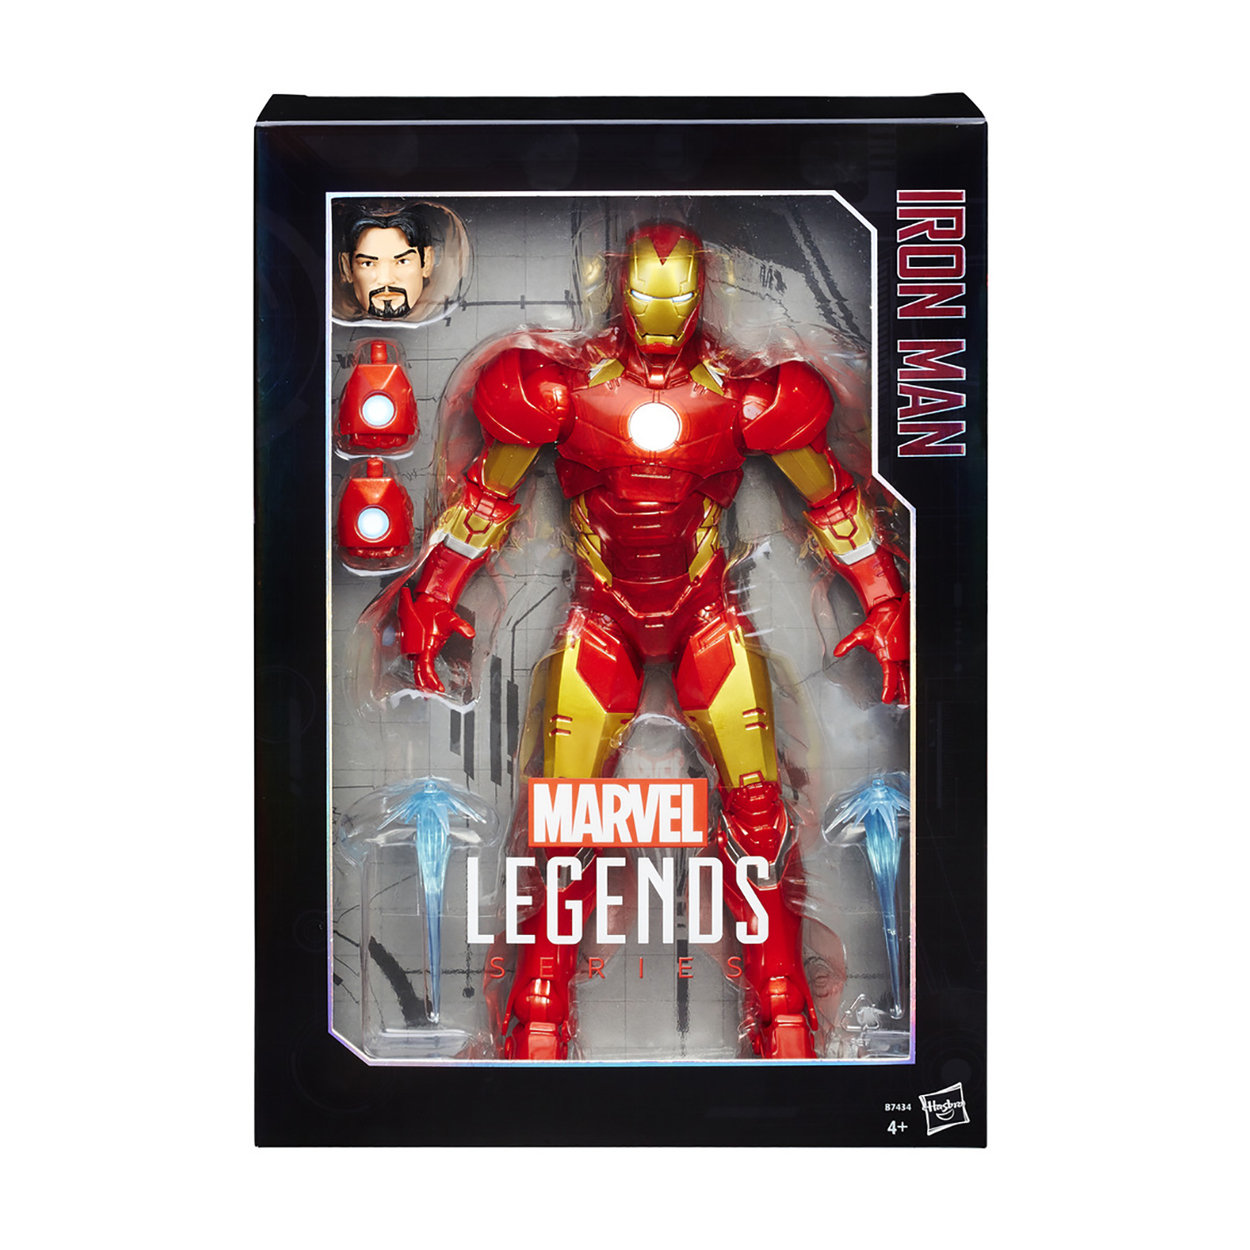 Image of Avengers Legends Iron Man